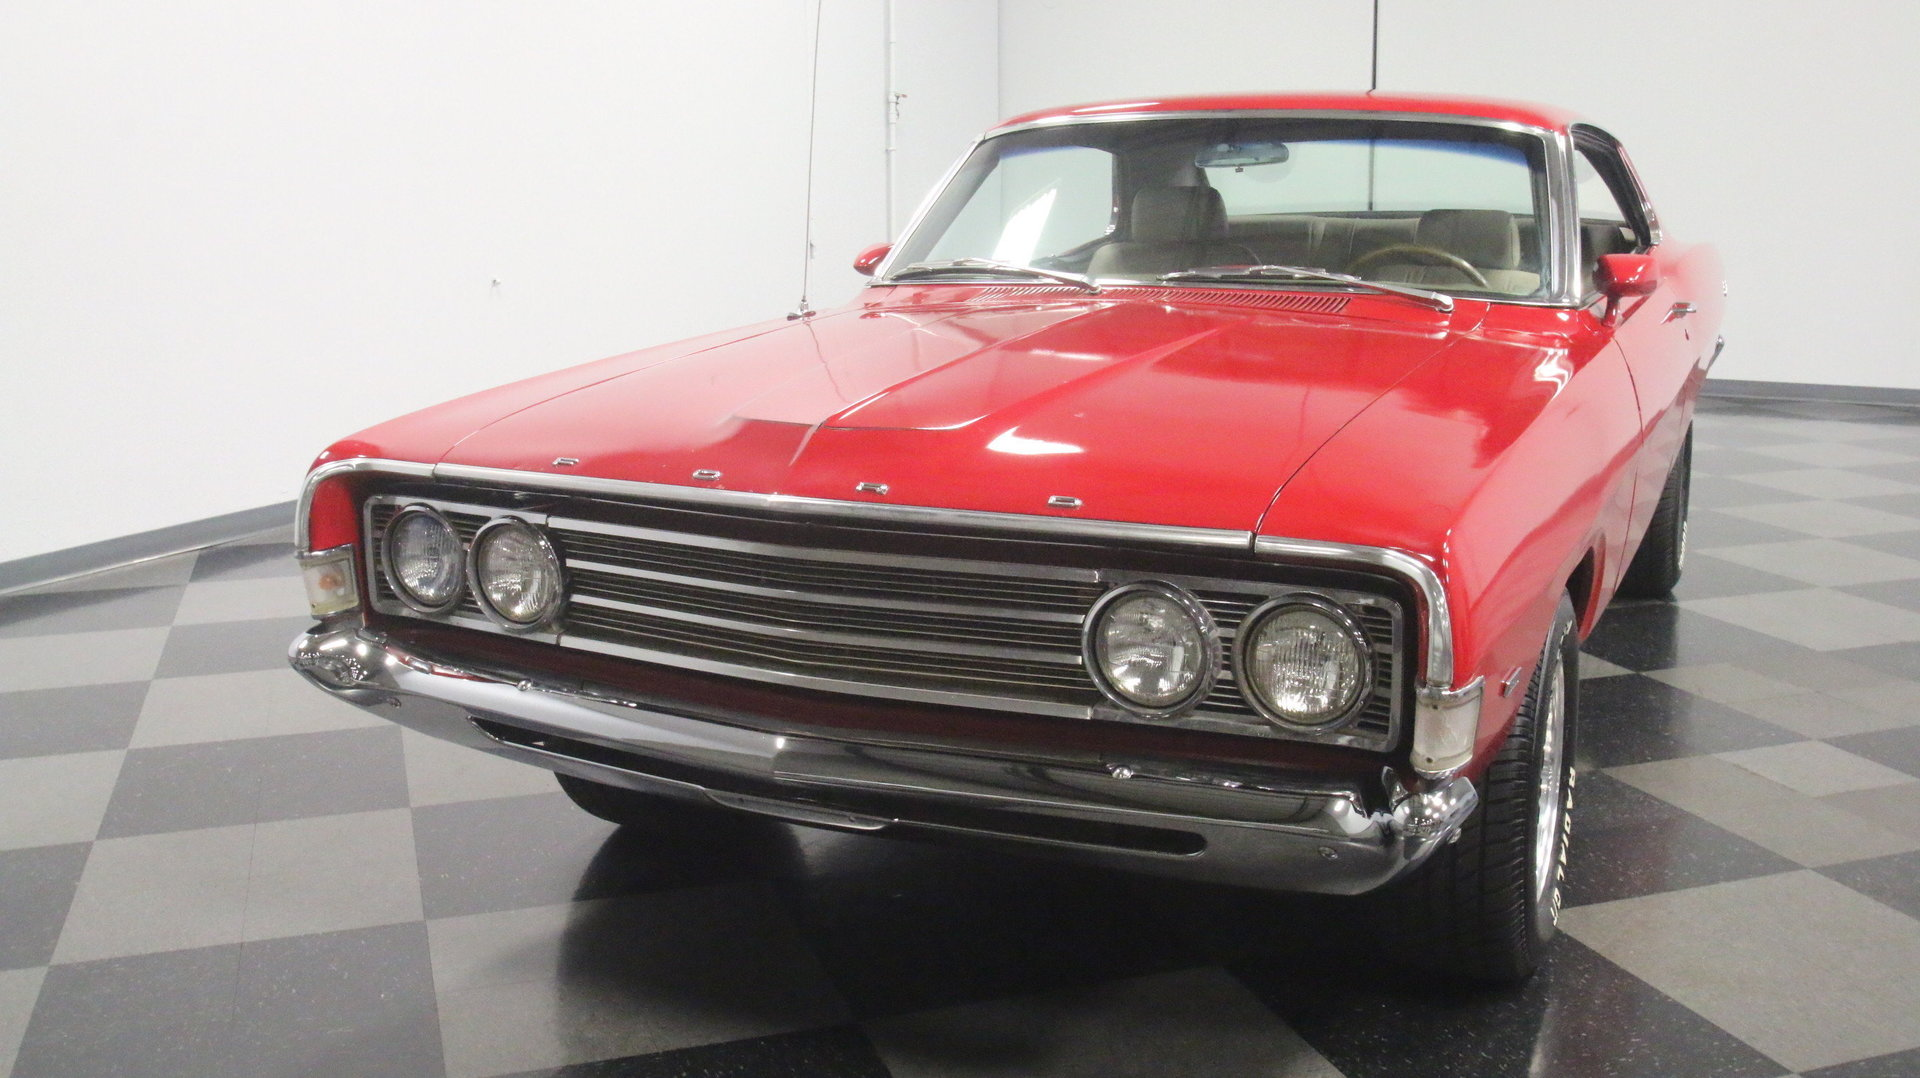 1969 Ford Fairlane Streetside Classics The Nations Trusted Torino Co Show More Photos